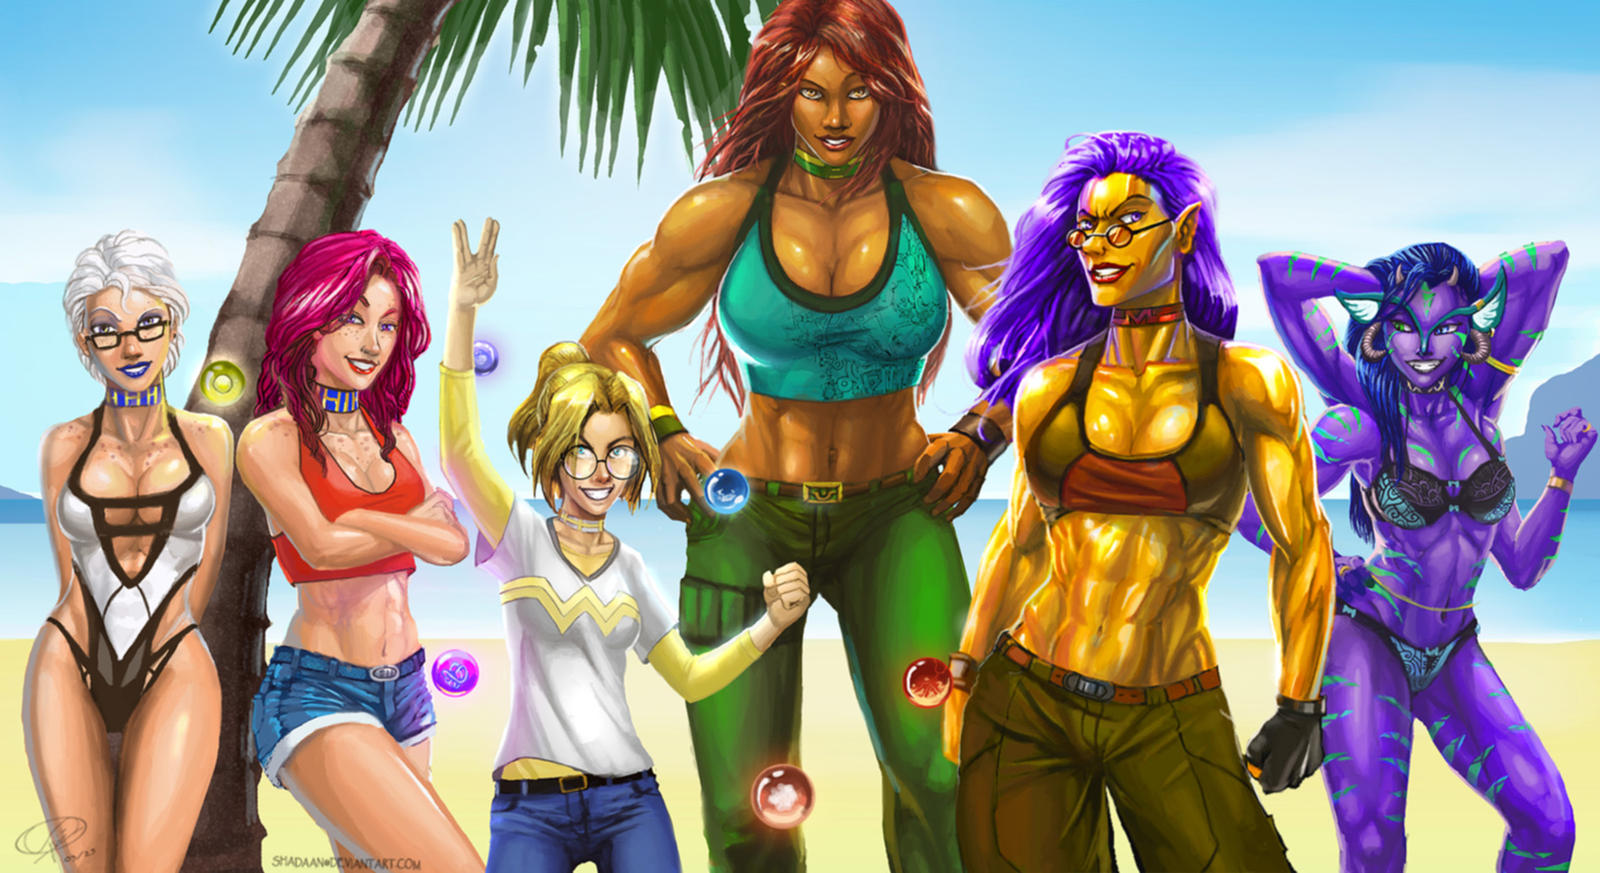 Grrl Power by Shadaan